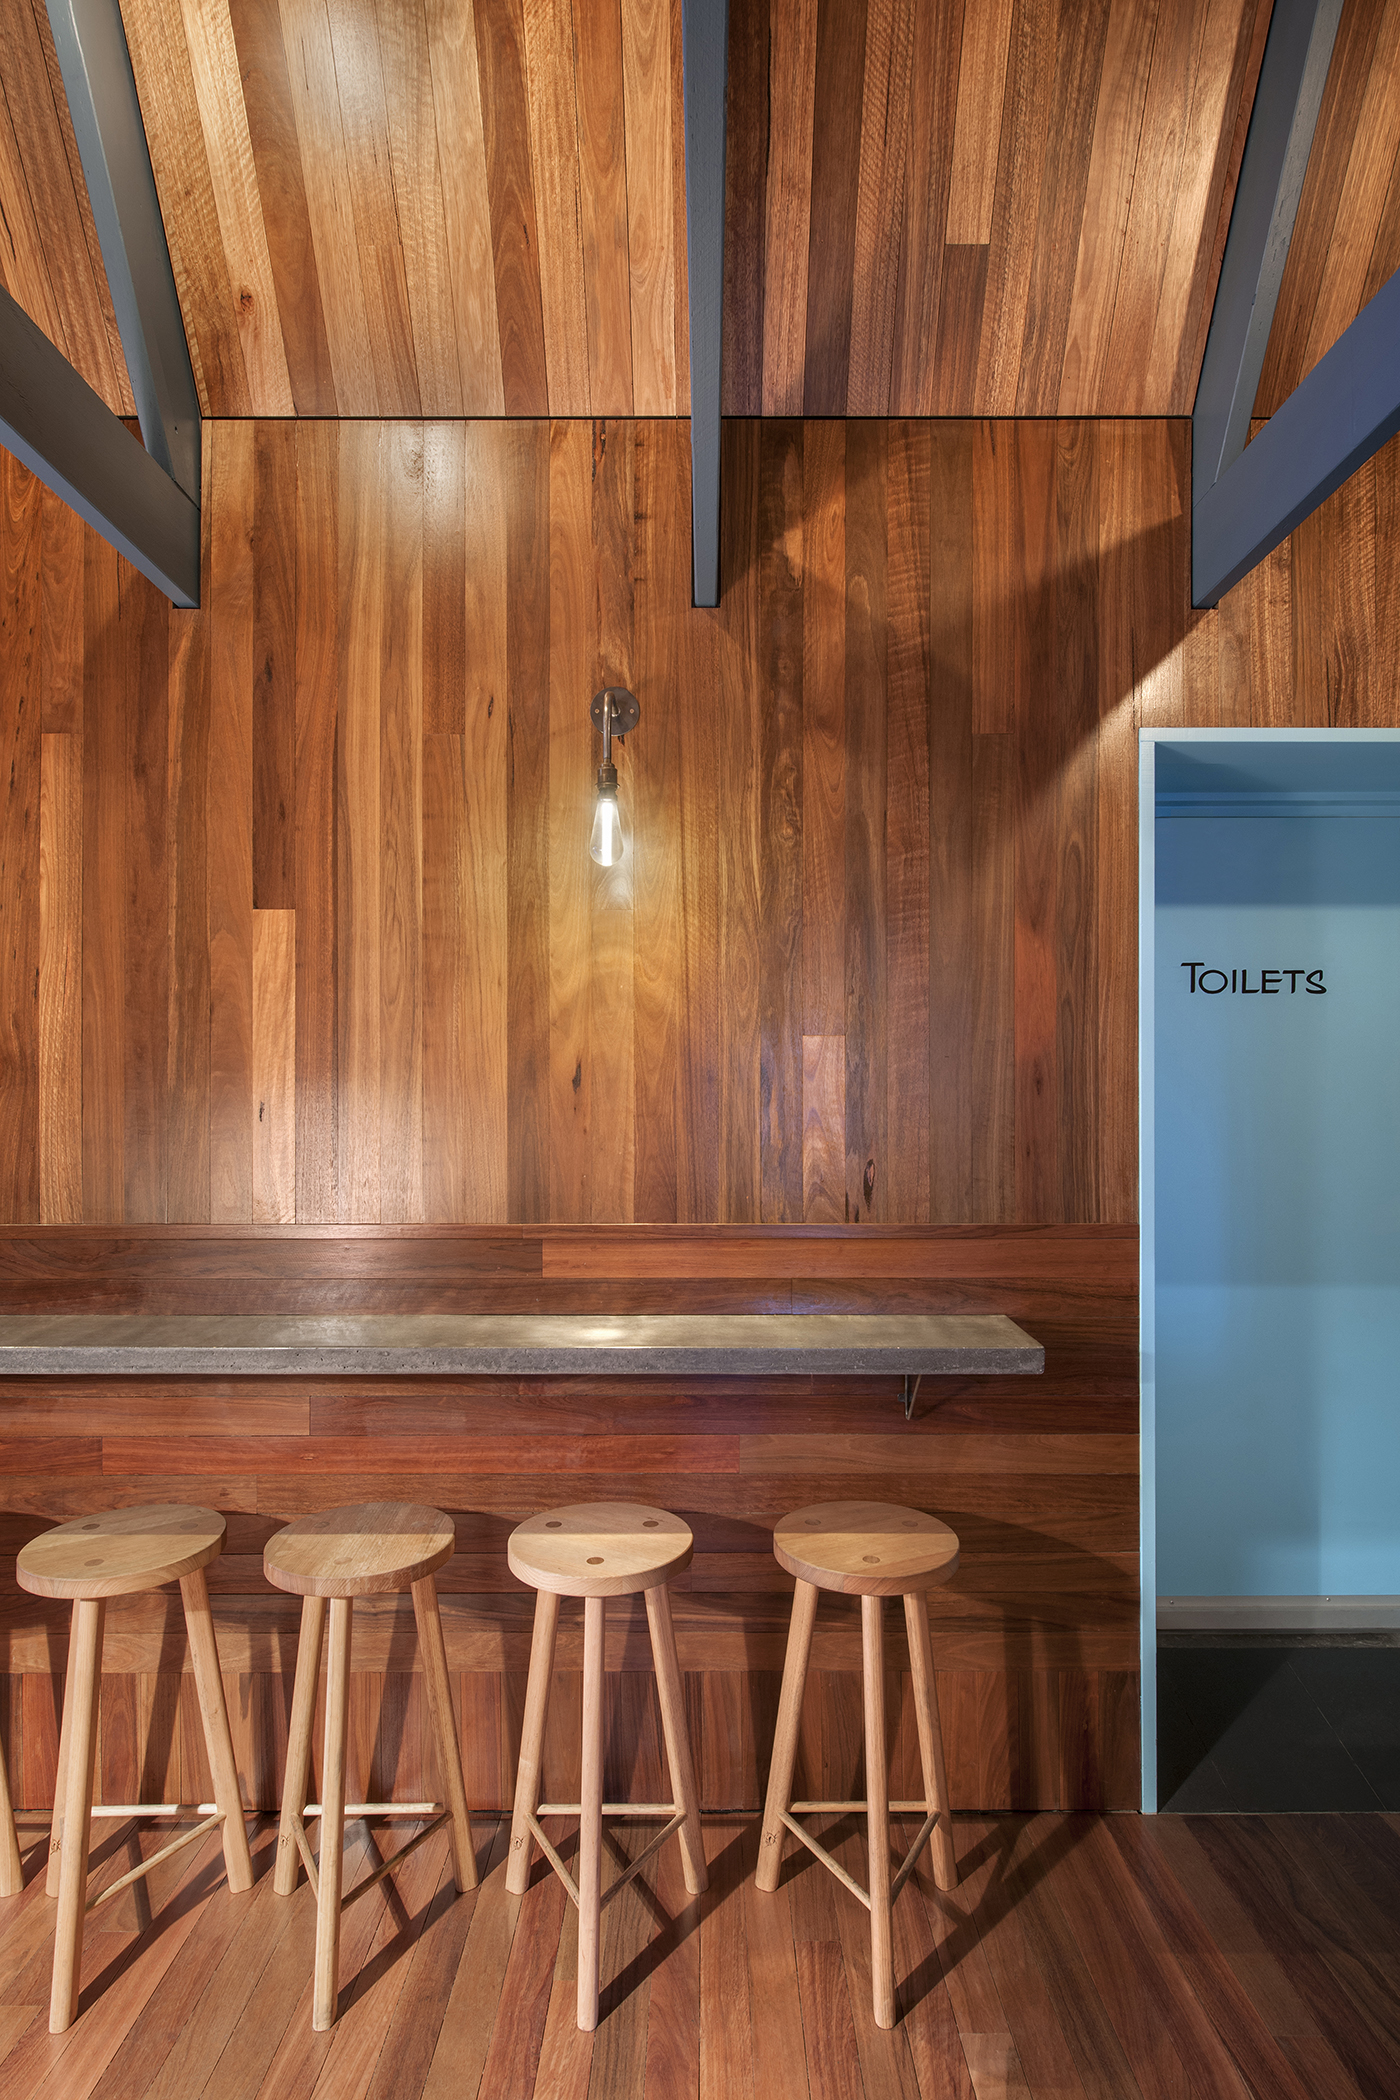 The Pink Moon Saloon is built with native Australian materials, such as Spotted Gum, Tasmanian Oak and Ironbark.